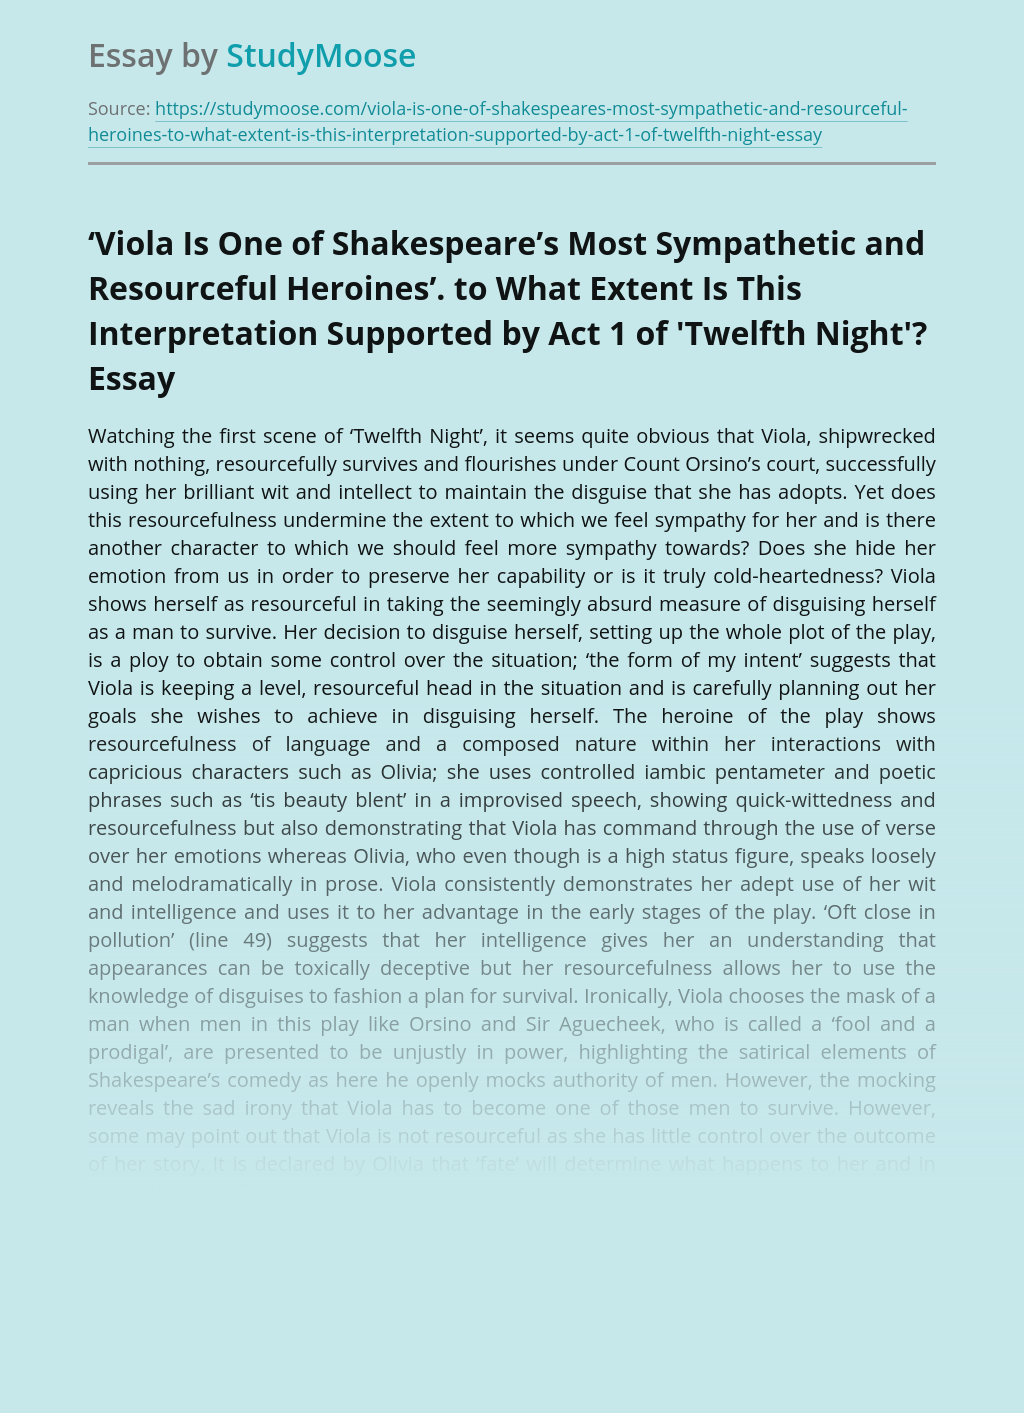 'Viola Is One of Shakespeare's Most Sympathetic and Resourceful Heroines'. to What Extent Is This Interpretation Supported by Act 1 of 'Twelfth Night'?